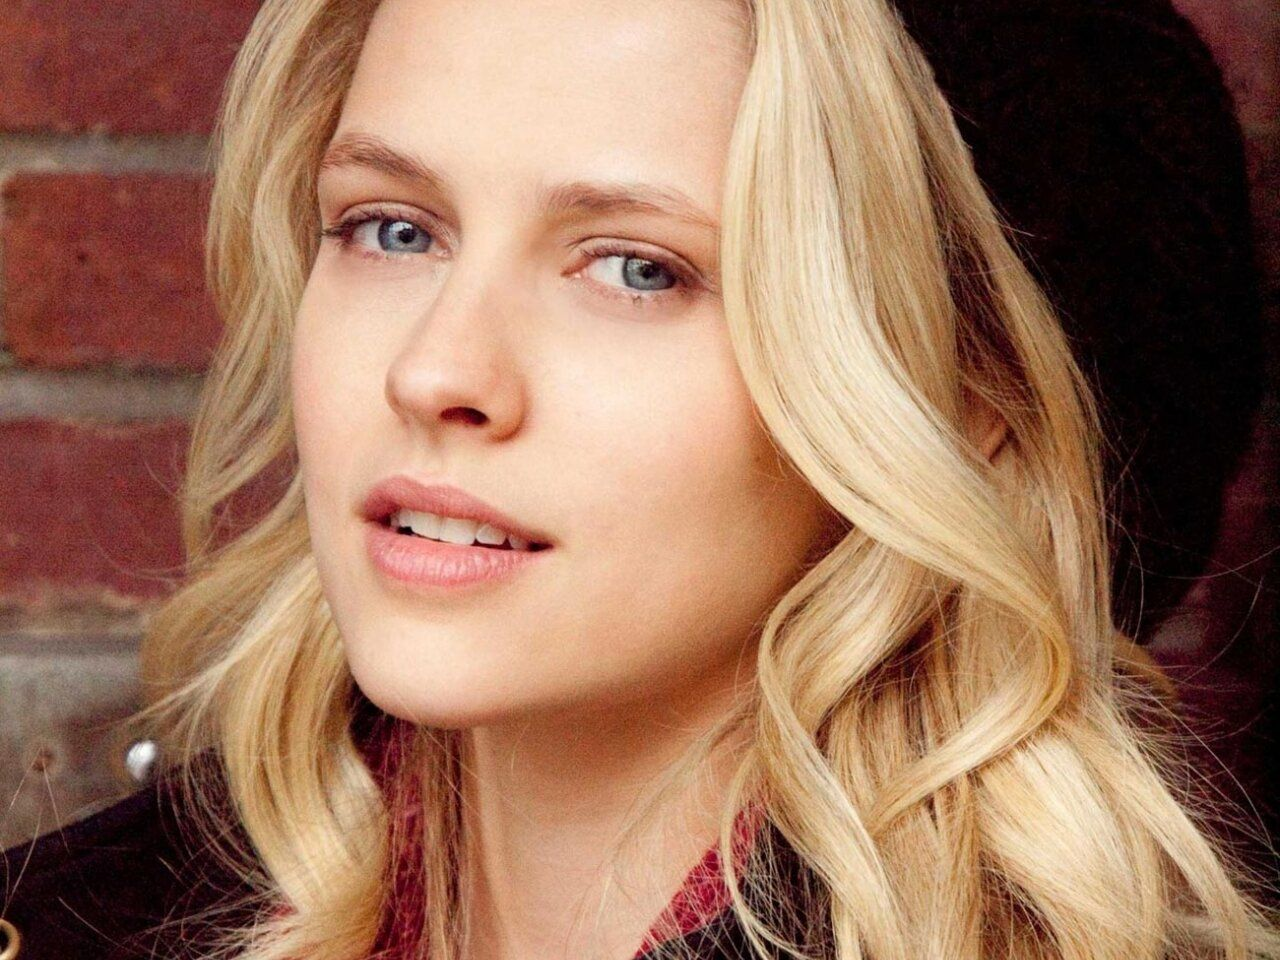 17 Best images about Teresa Palmer on Pinterest | Actresses ...